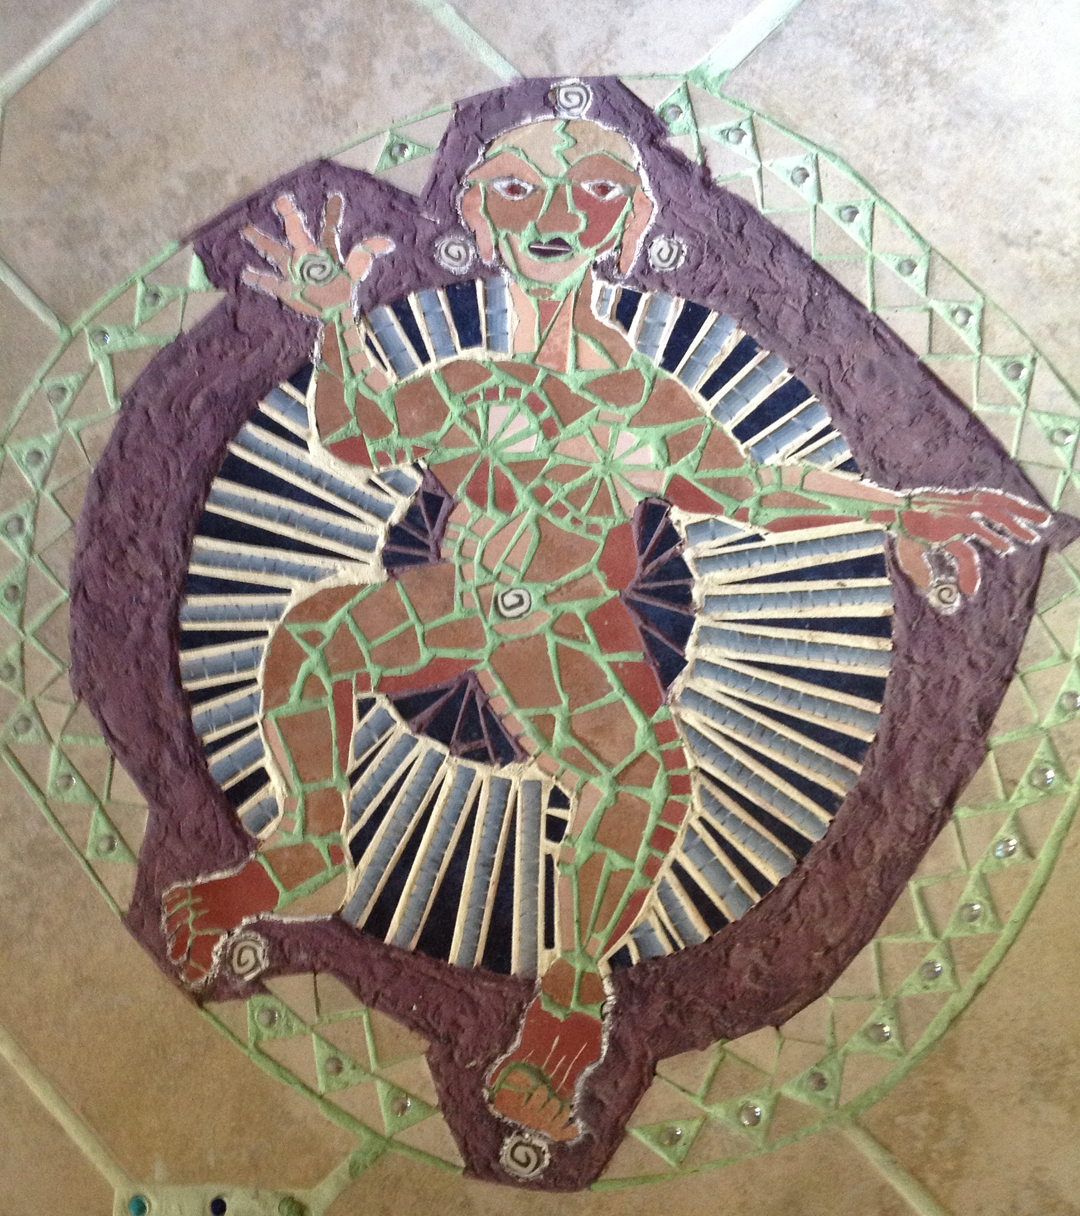 Ferocious Mother floor tile